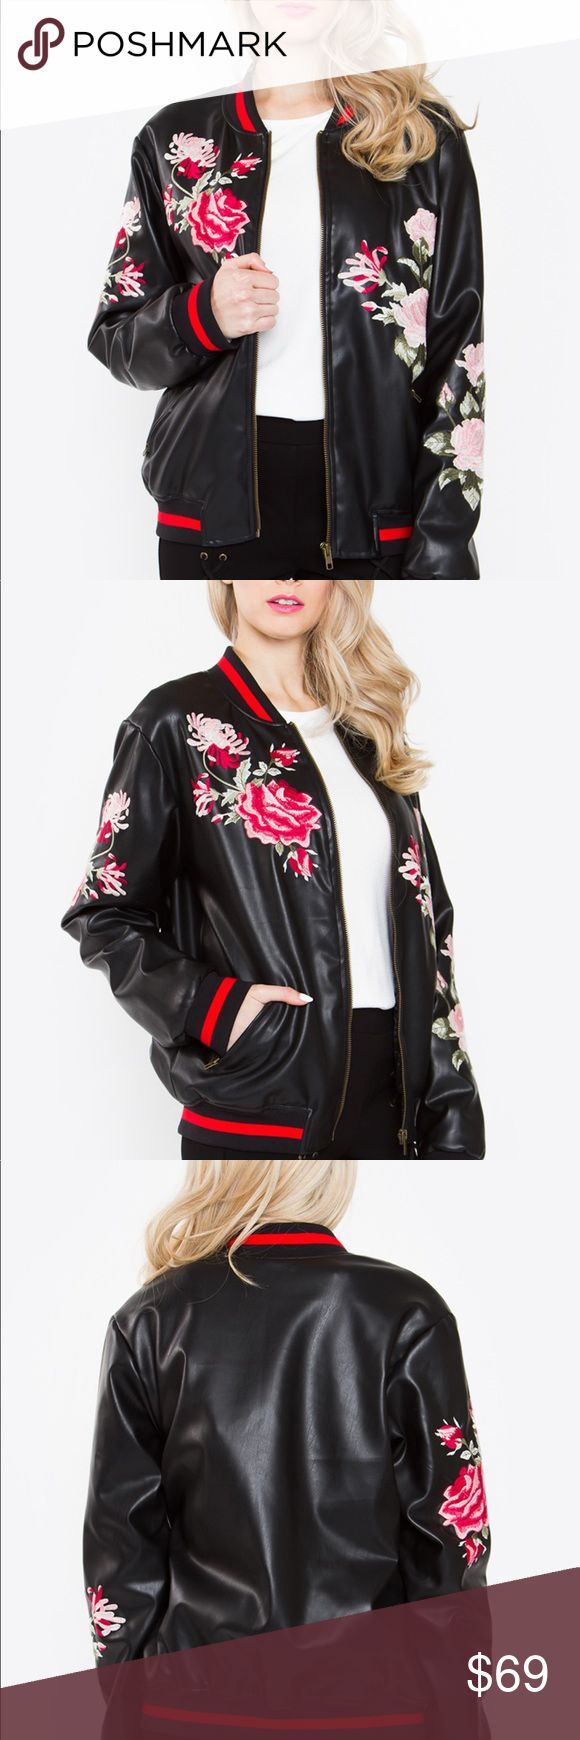 """⚜️ Embroided Bomber Jacket This embroidered bomber jacket is a true showstopper! So obsessed with this  baseball inspired look with embroidered florals for a more classic feminine look! Pair with a shirt and jeans to complete your look.  Fabric Content Self: 60% Polyester, 40% Polyurethane Lining: 96% Polyester, 4% Spandex  Size + Fit - Model is wearing size S - Measurements taken from size S - Length: 23.75""""  BRAND NEW IN PLASTIC Jackets & Coats"""